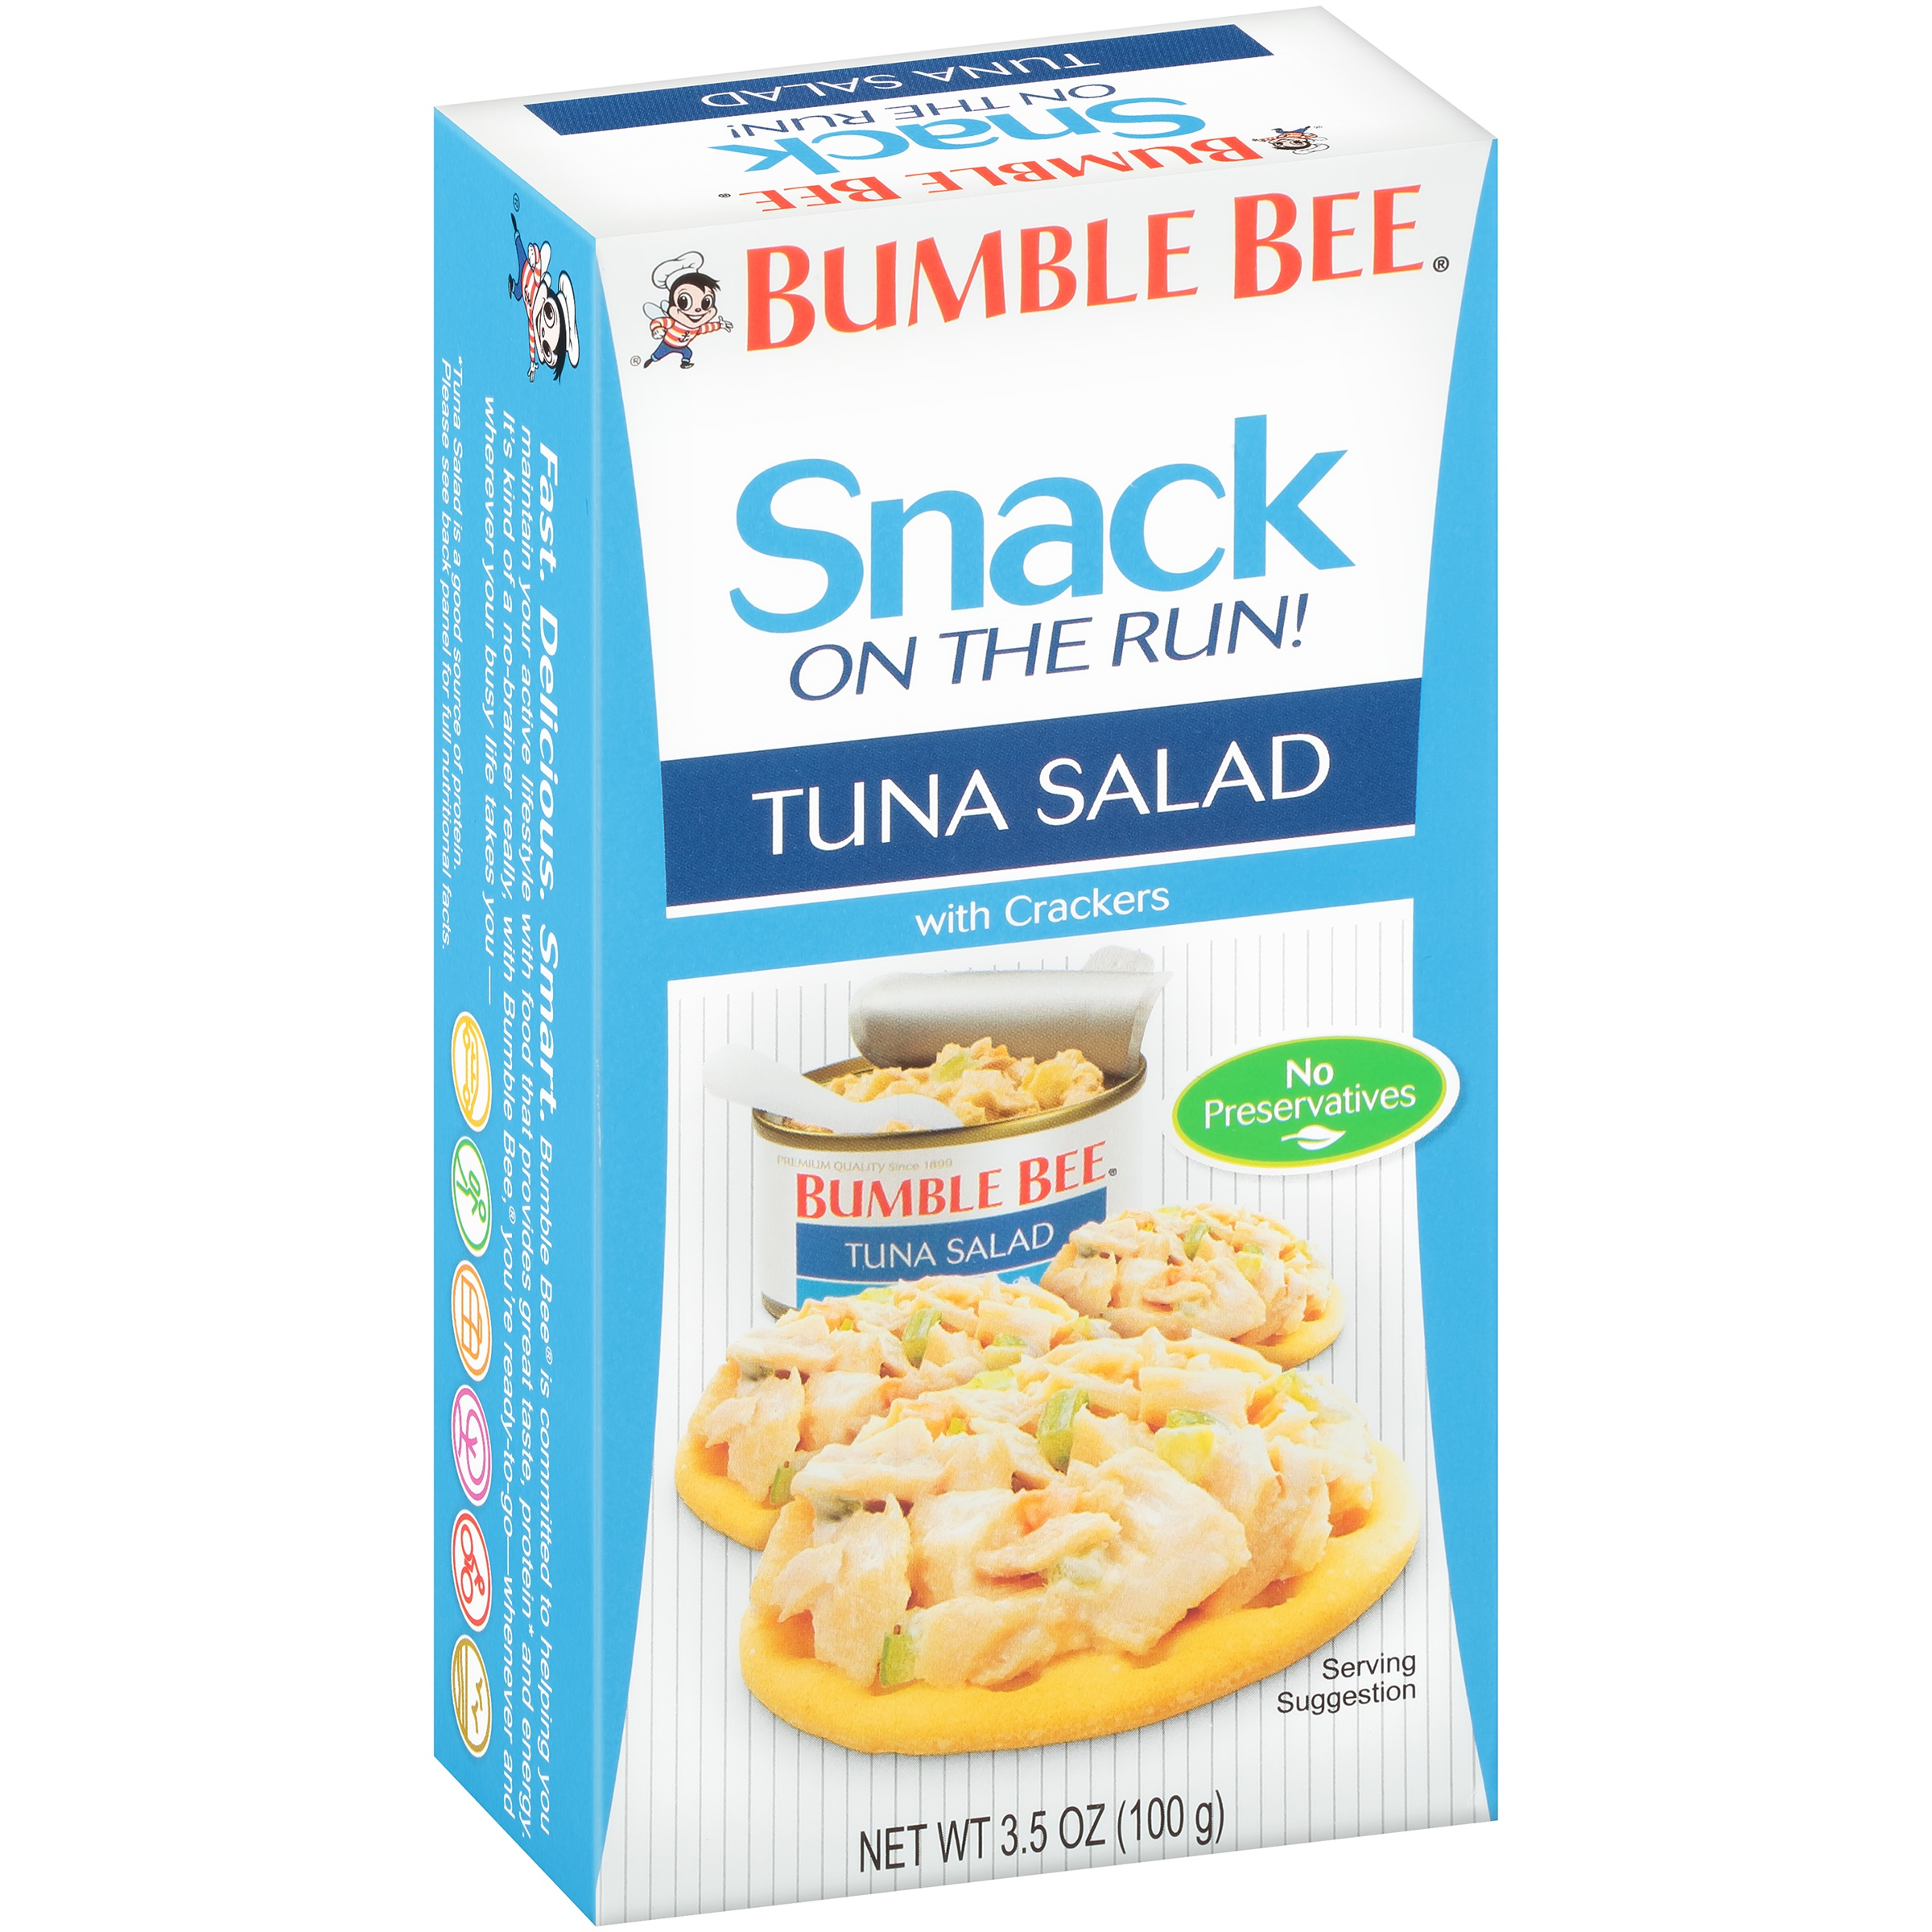 Bumble Bee Snack On The Run! Tuna Salad with Crackers, 3.5 oz Kit